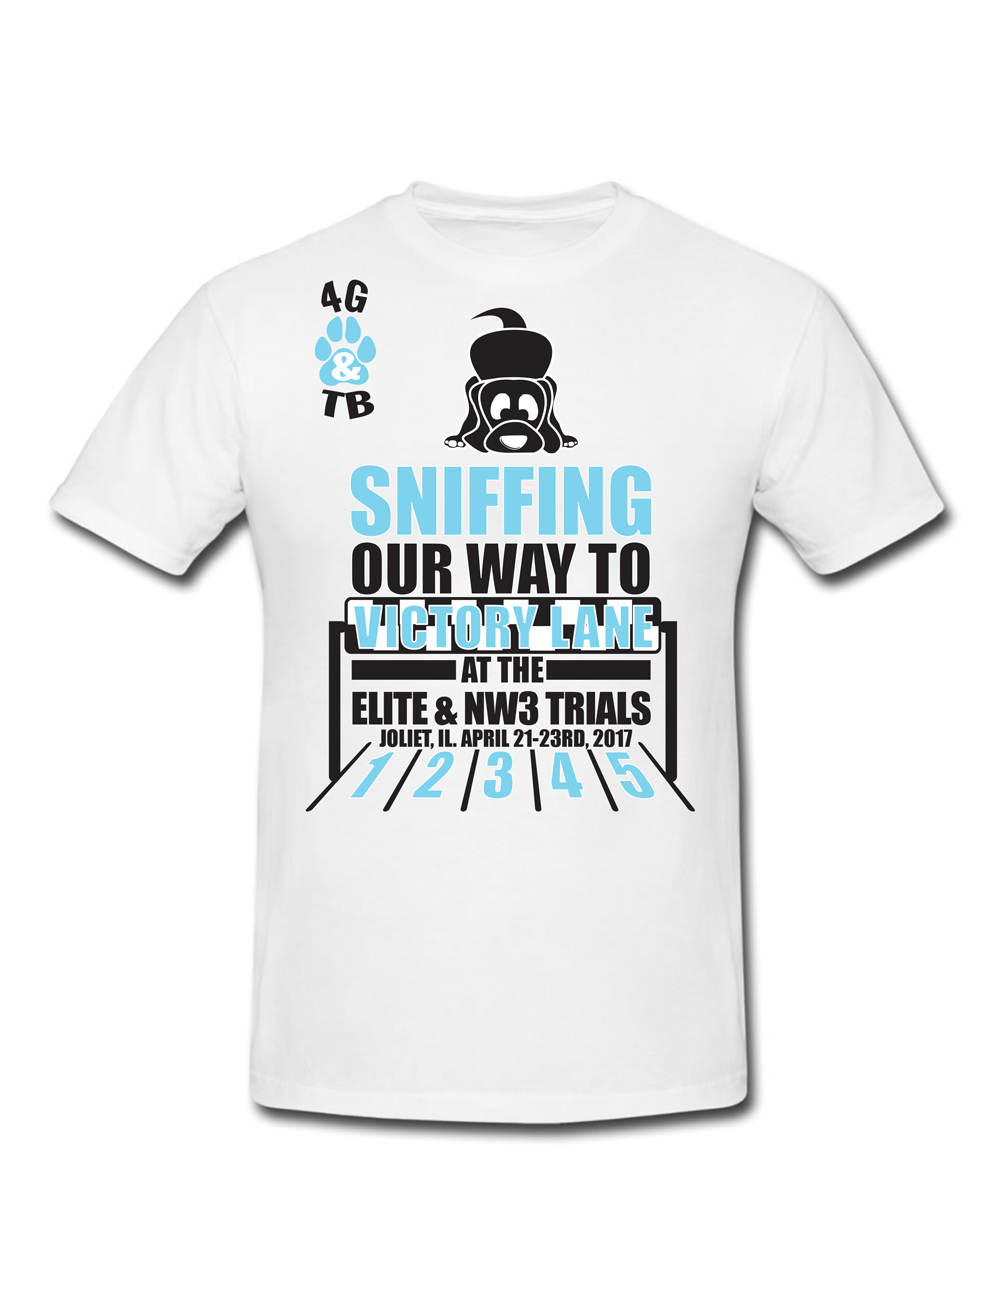 37 cool t shirt design examples for inspiration for Promotional t shirt design